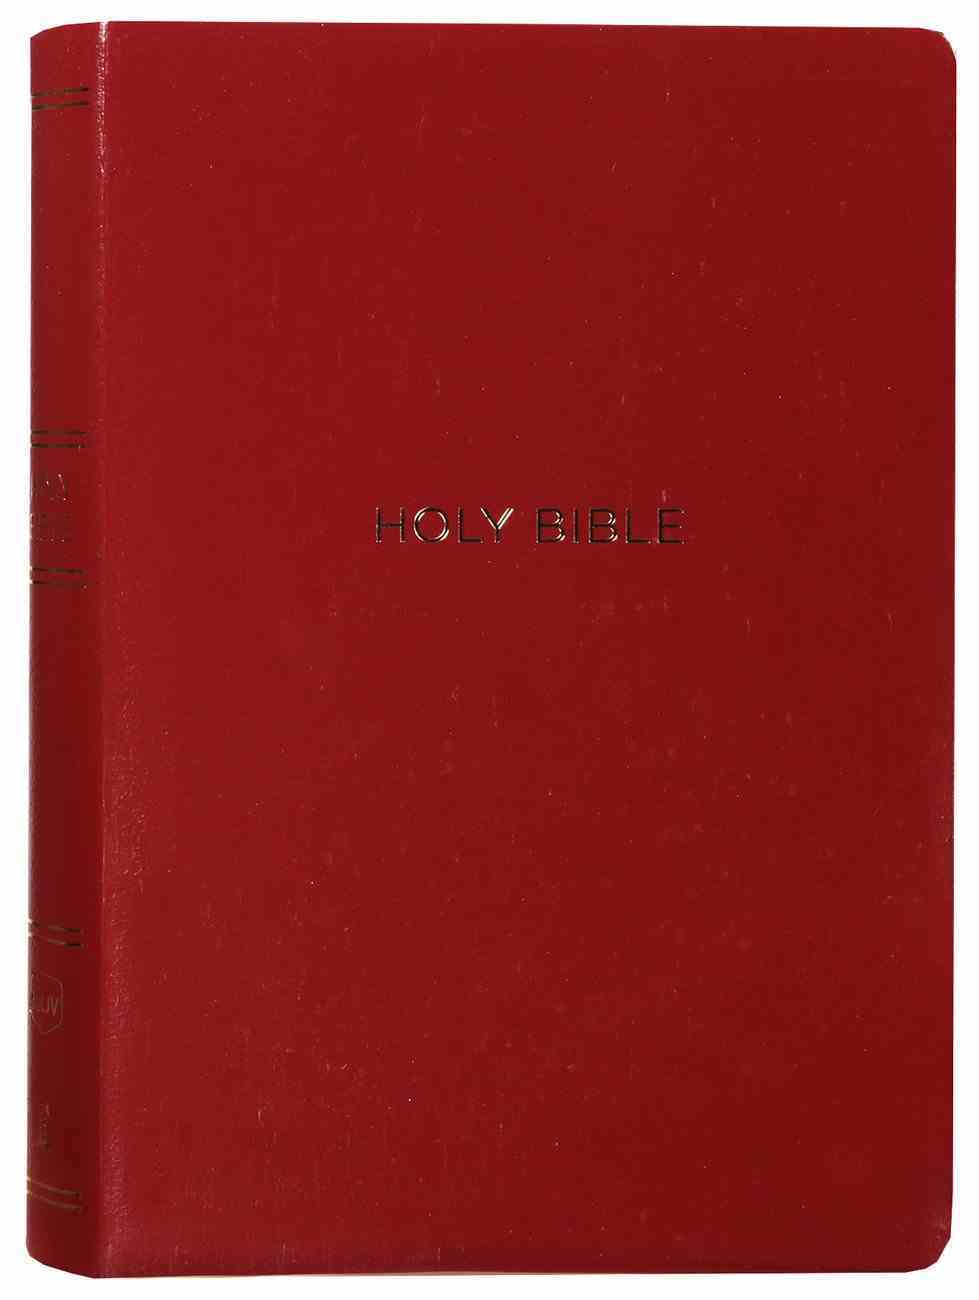 NKJV Reference Bible Giant Print Burgundy Indexed (Red Letter Edition) Imitation Leather